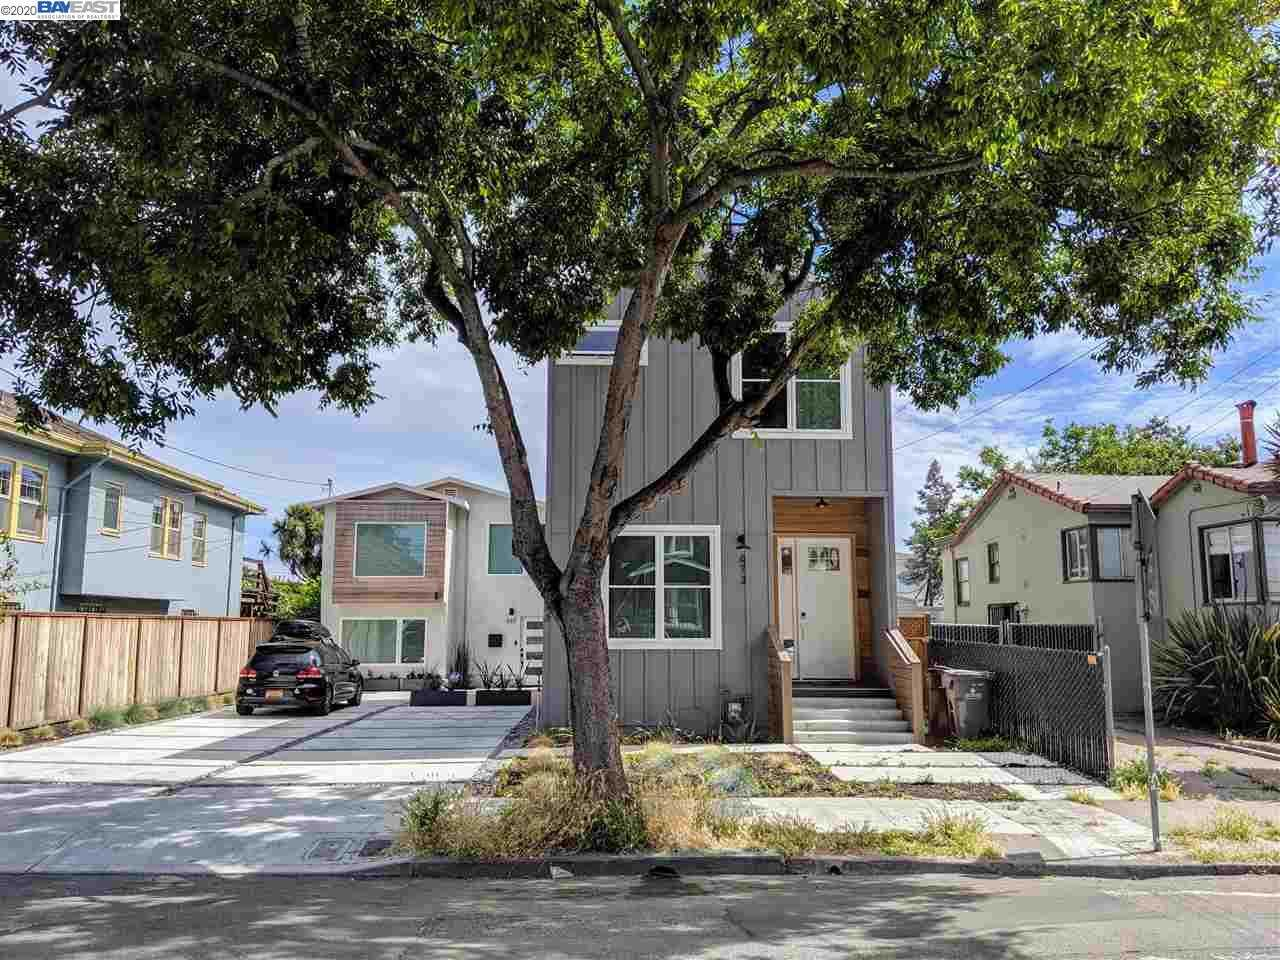 $895,000 - 5Br/3Ba -  for Sale in Longfellow, Oakland